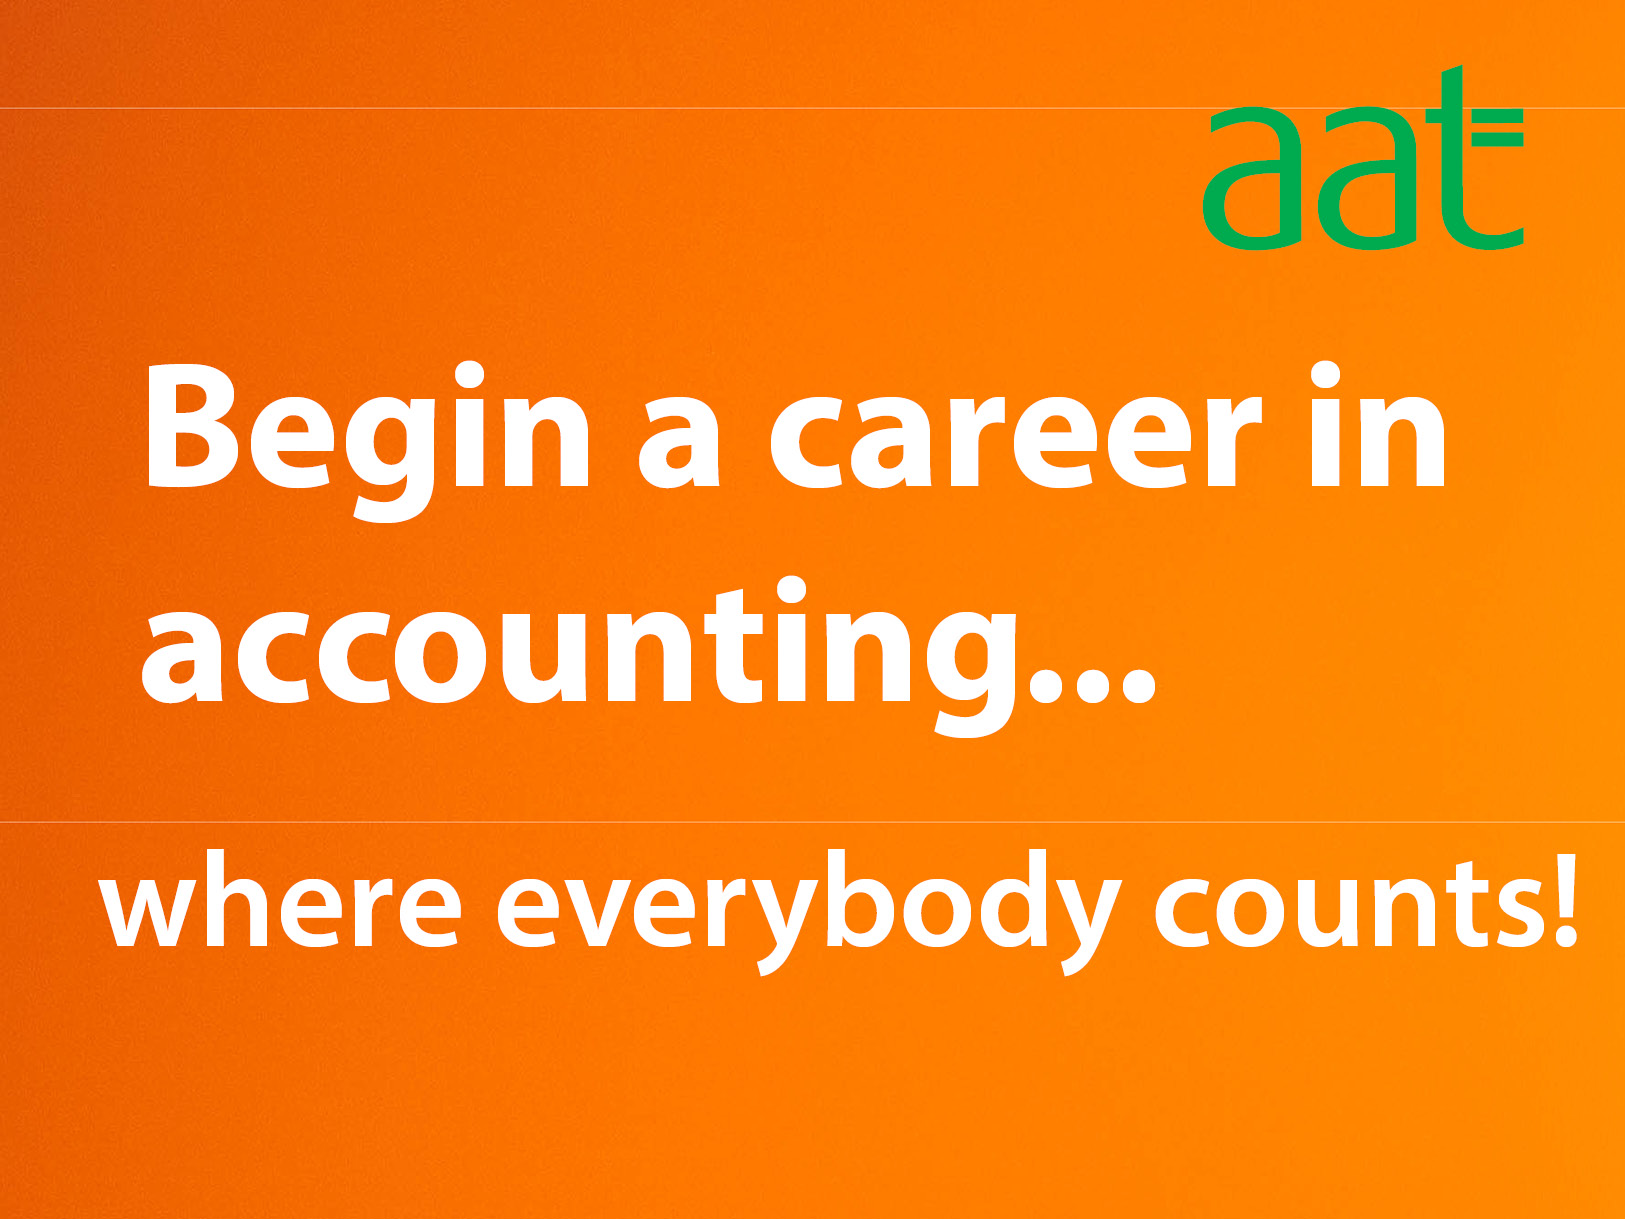 Begin a career in accounting...where everybody counts